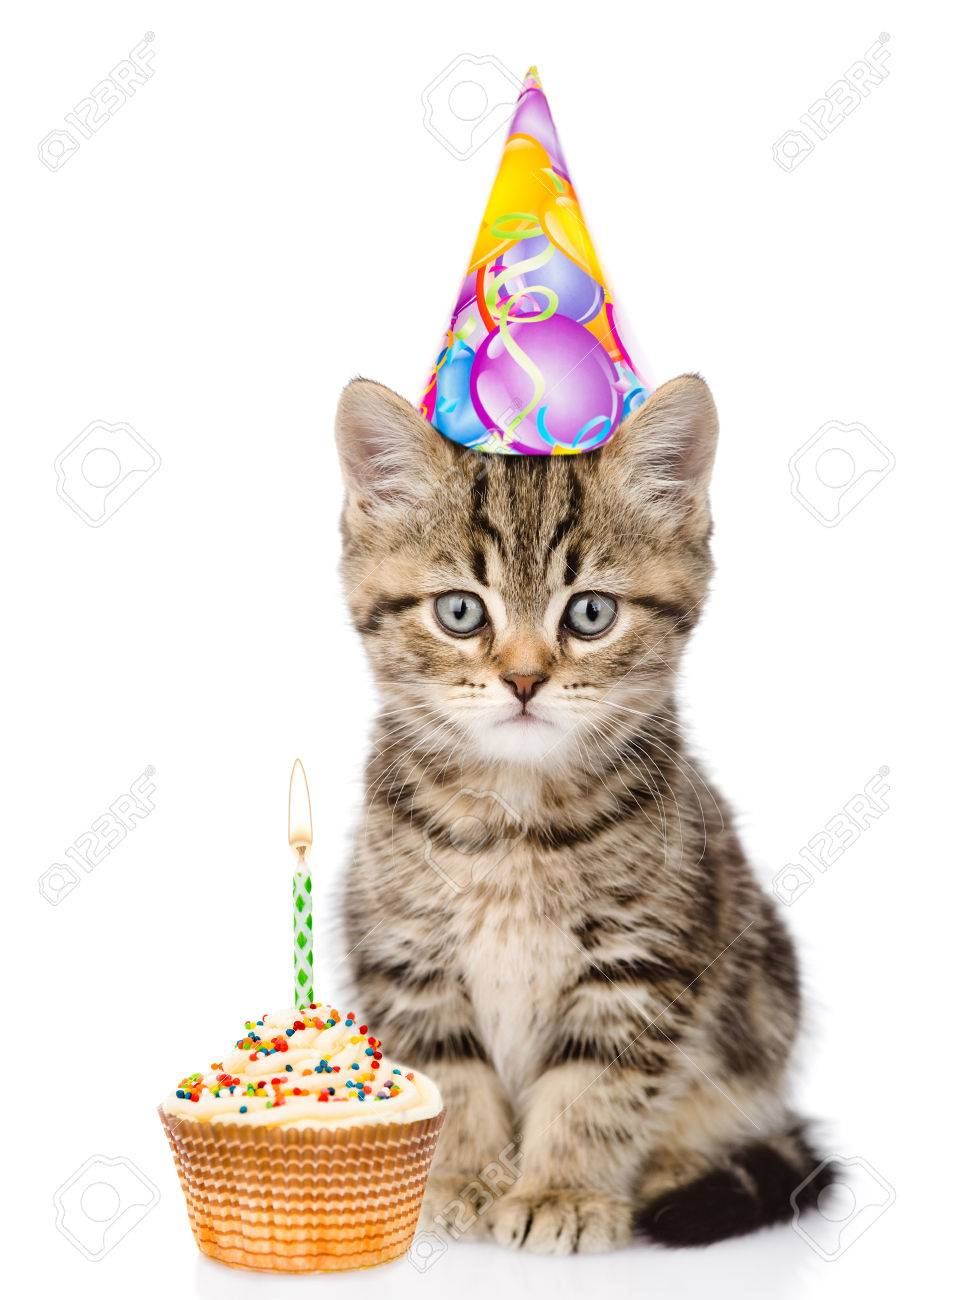 Cat In Birthday Hat And Cake Looking At Camera Isolated On White Background Stock